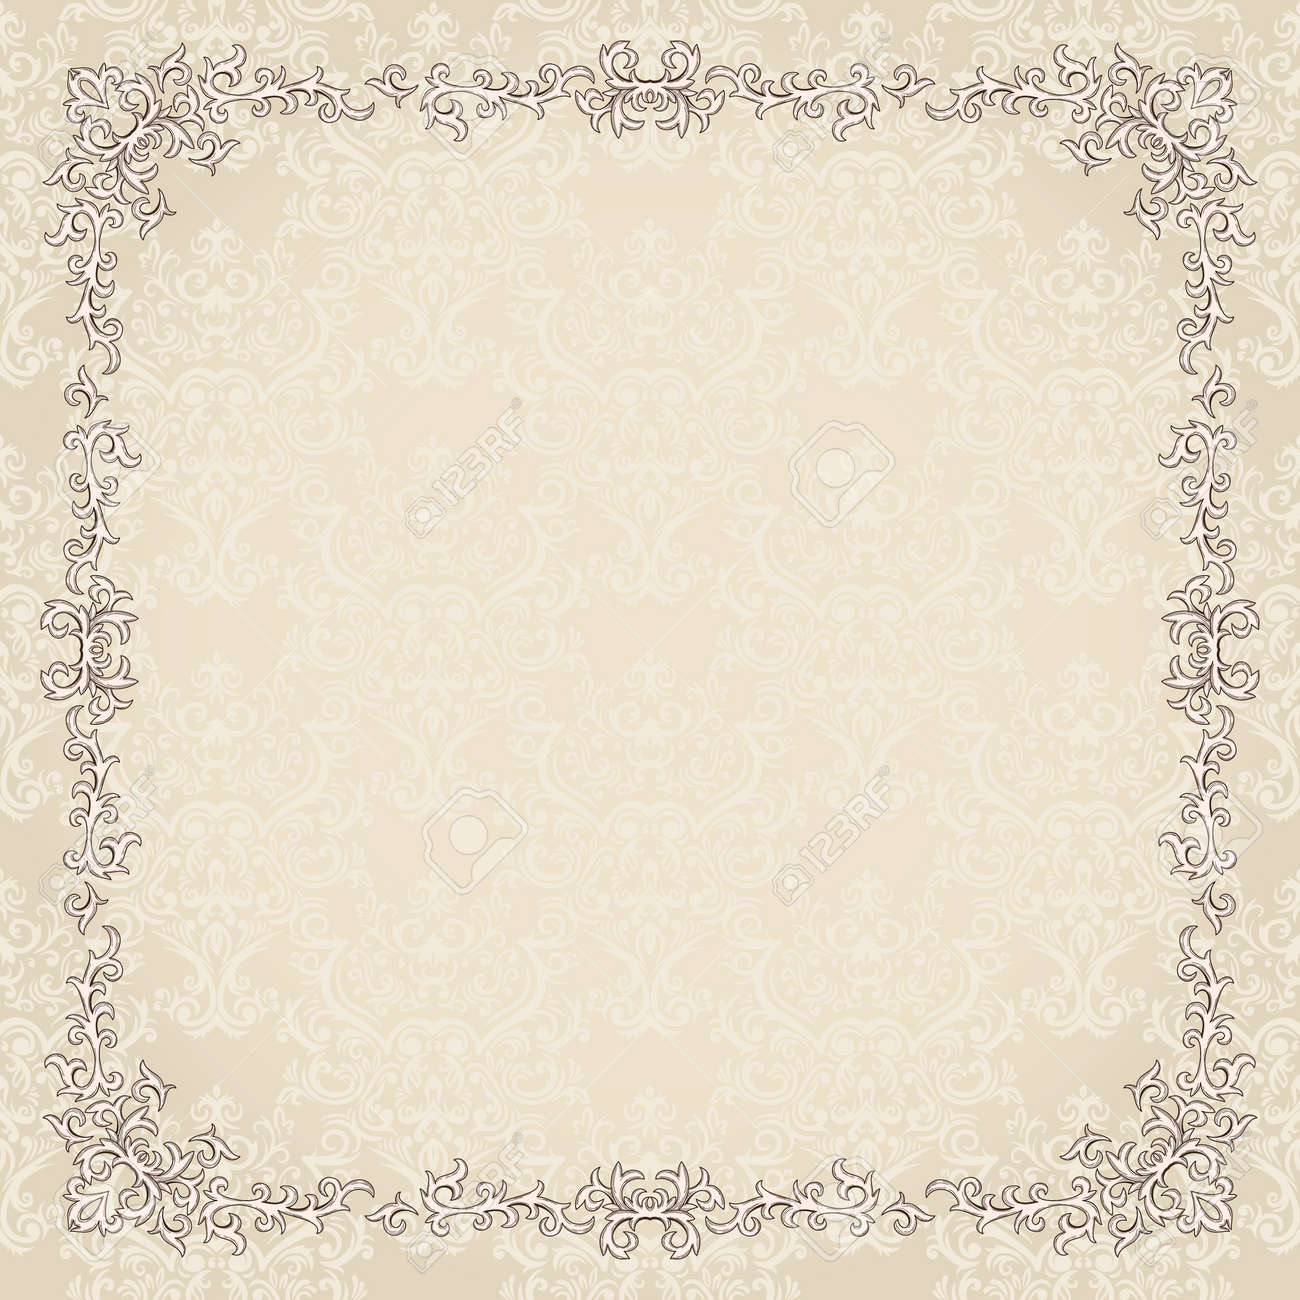 Vintage background with damask pattern in retro style Stock Vector - 11964896